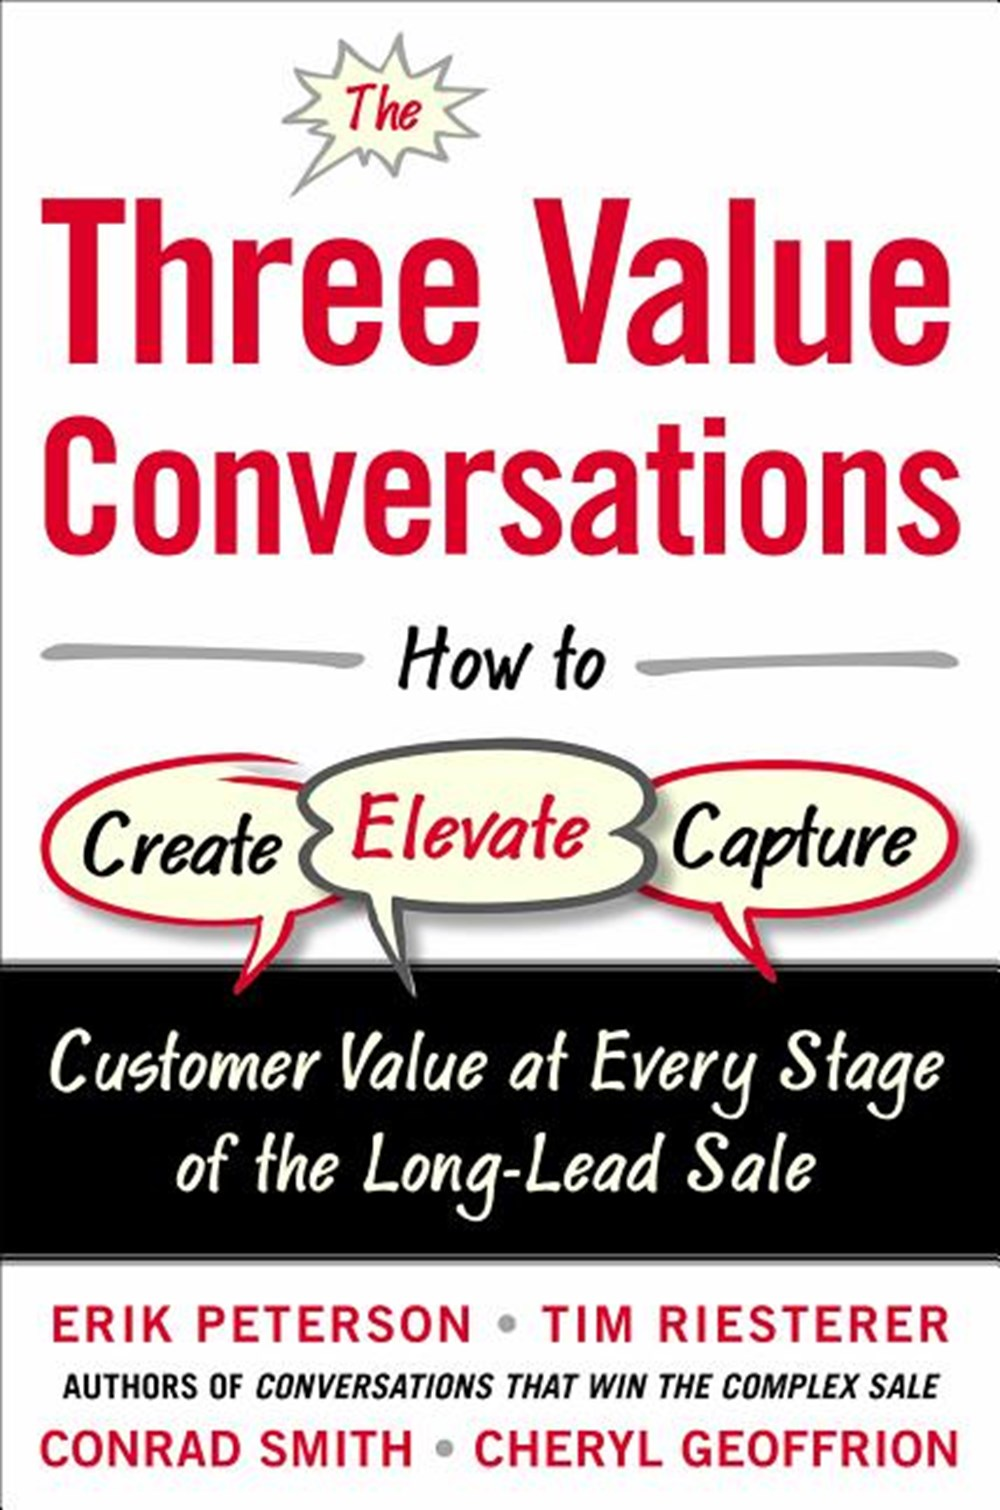 Three Value Conversations How to Create, Elevate, and Capture Customer Value at Every Stage of the L